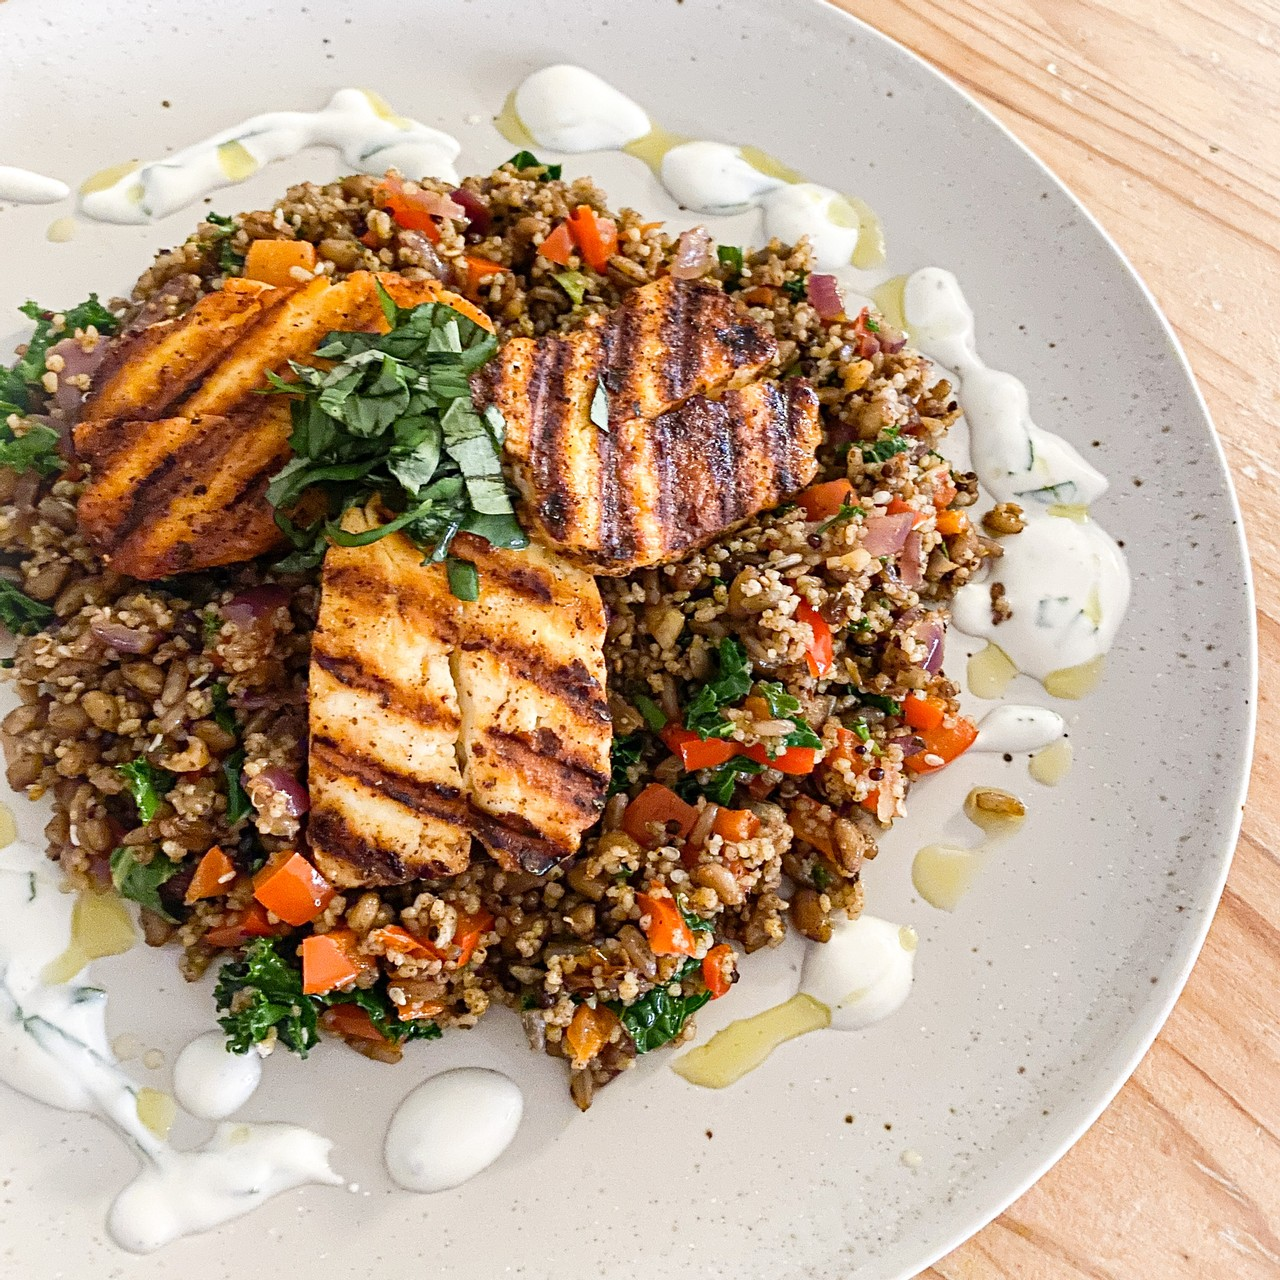 Spiced Halloumi, Pepper and Cous Cous Salad